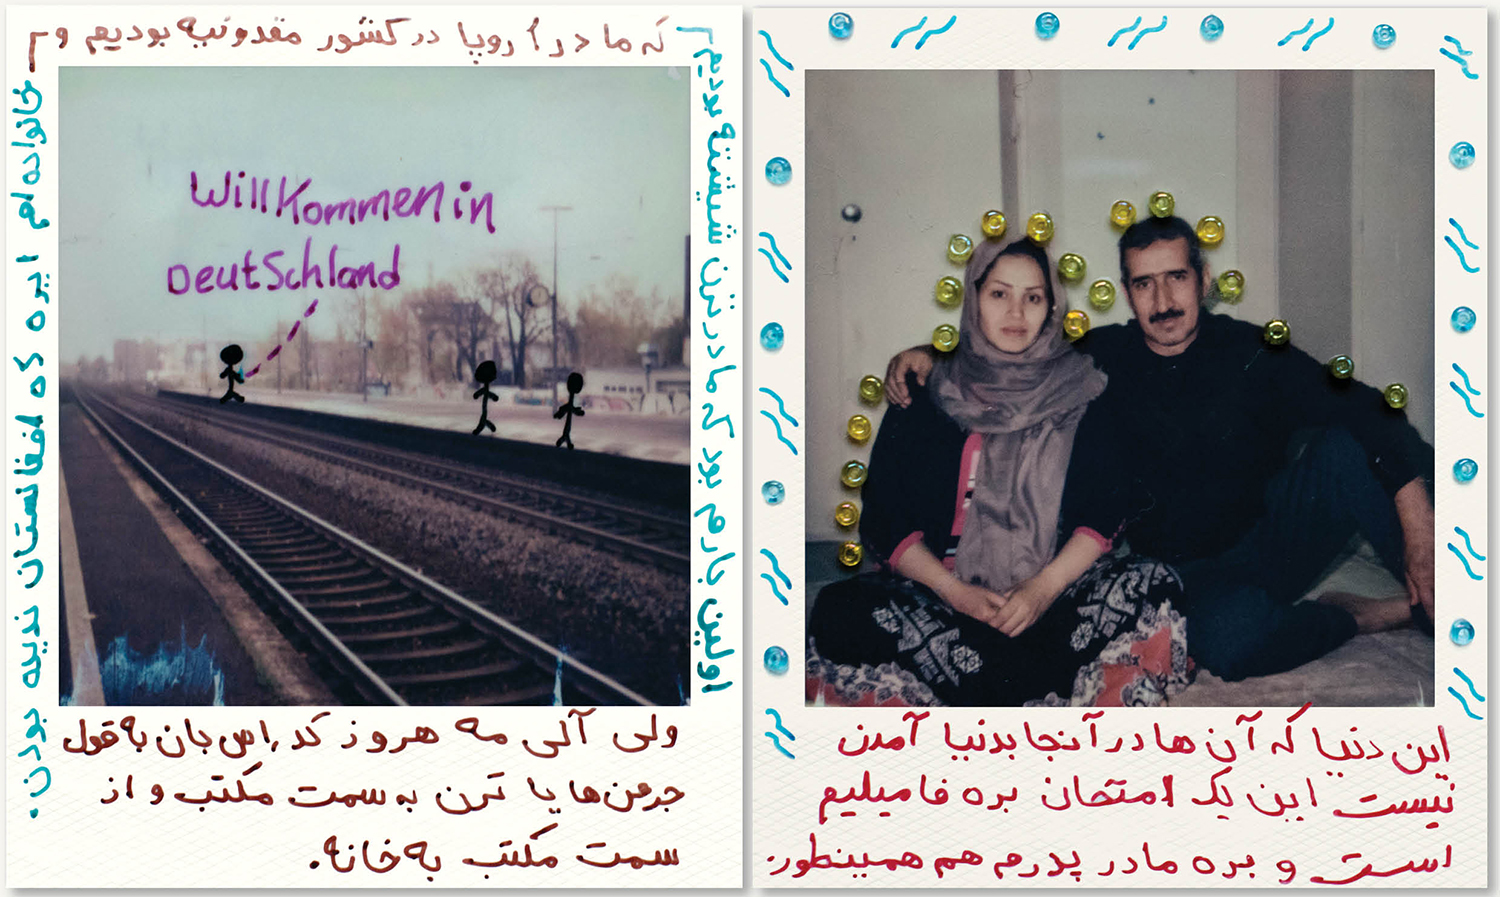 "(L): ""The first time I took a train was in Macedonia, in Europe. In Afghanistan, my family had never seen something like this before. But now I take the train to and from school every day."" (R): ""This world is not the world in which we were born. It is a test for my family, especially for my mother and father."" Photos by Milad Akhabyar."